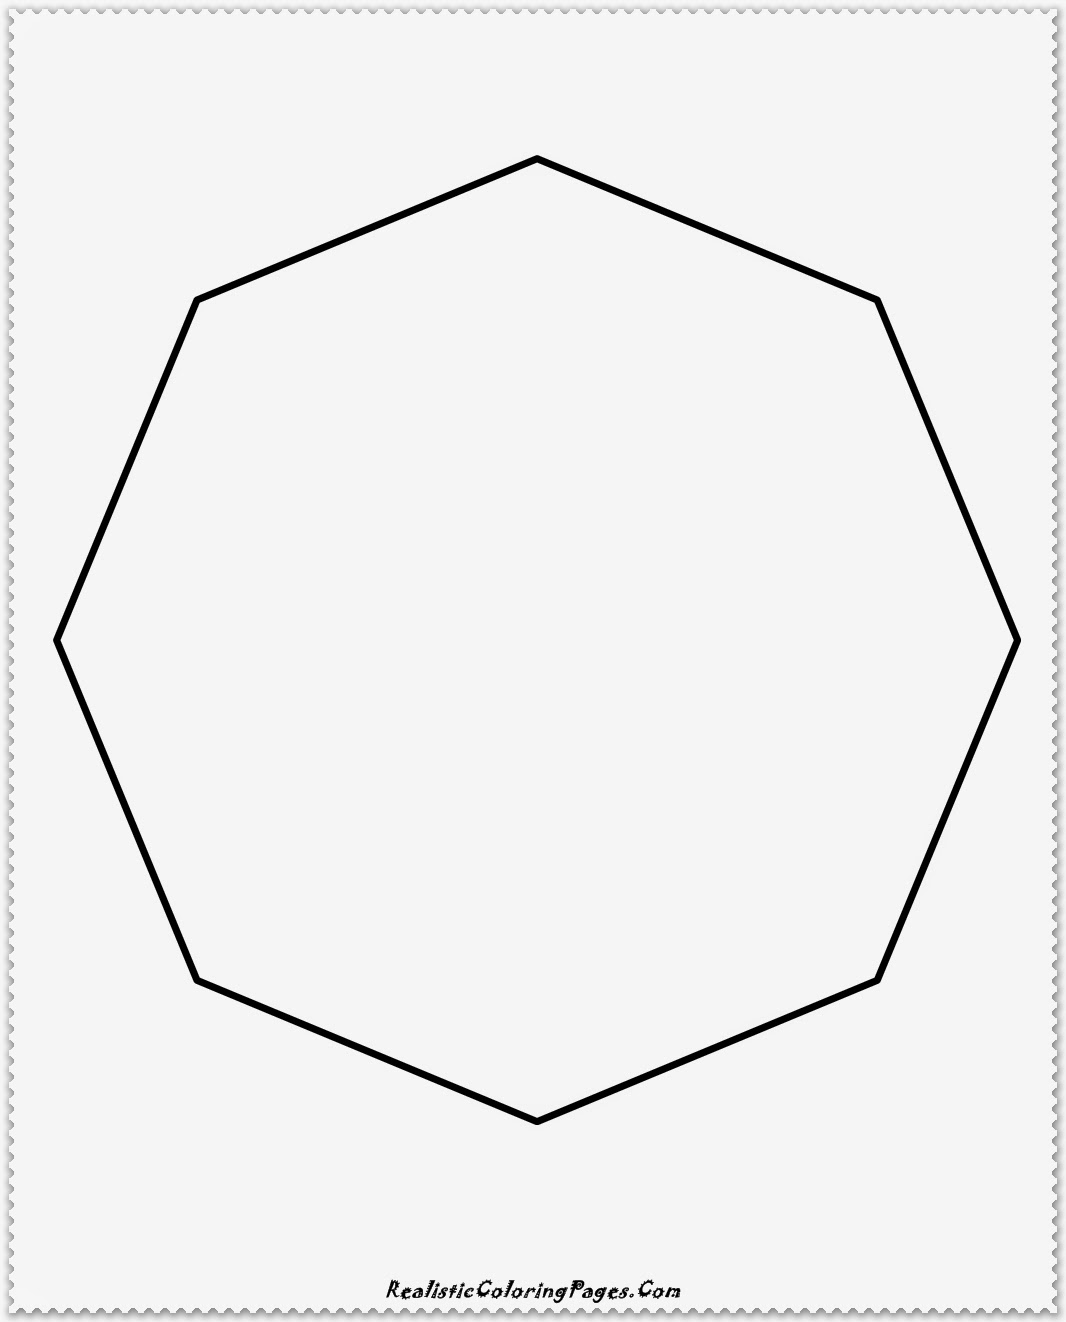 8 side polygon coloring pages